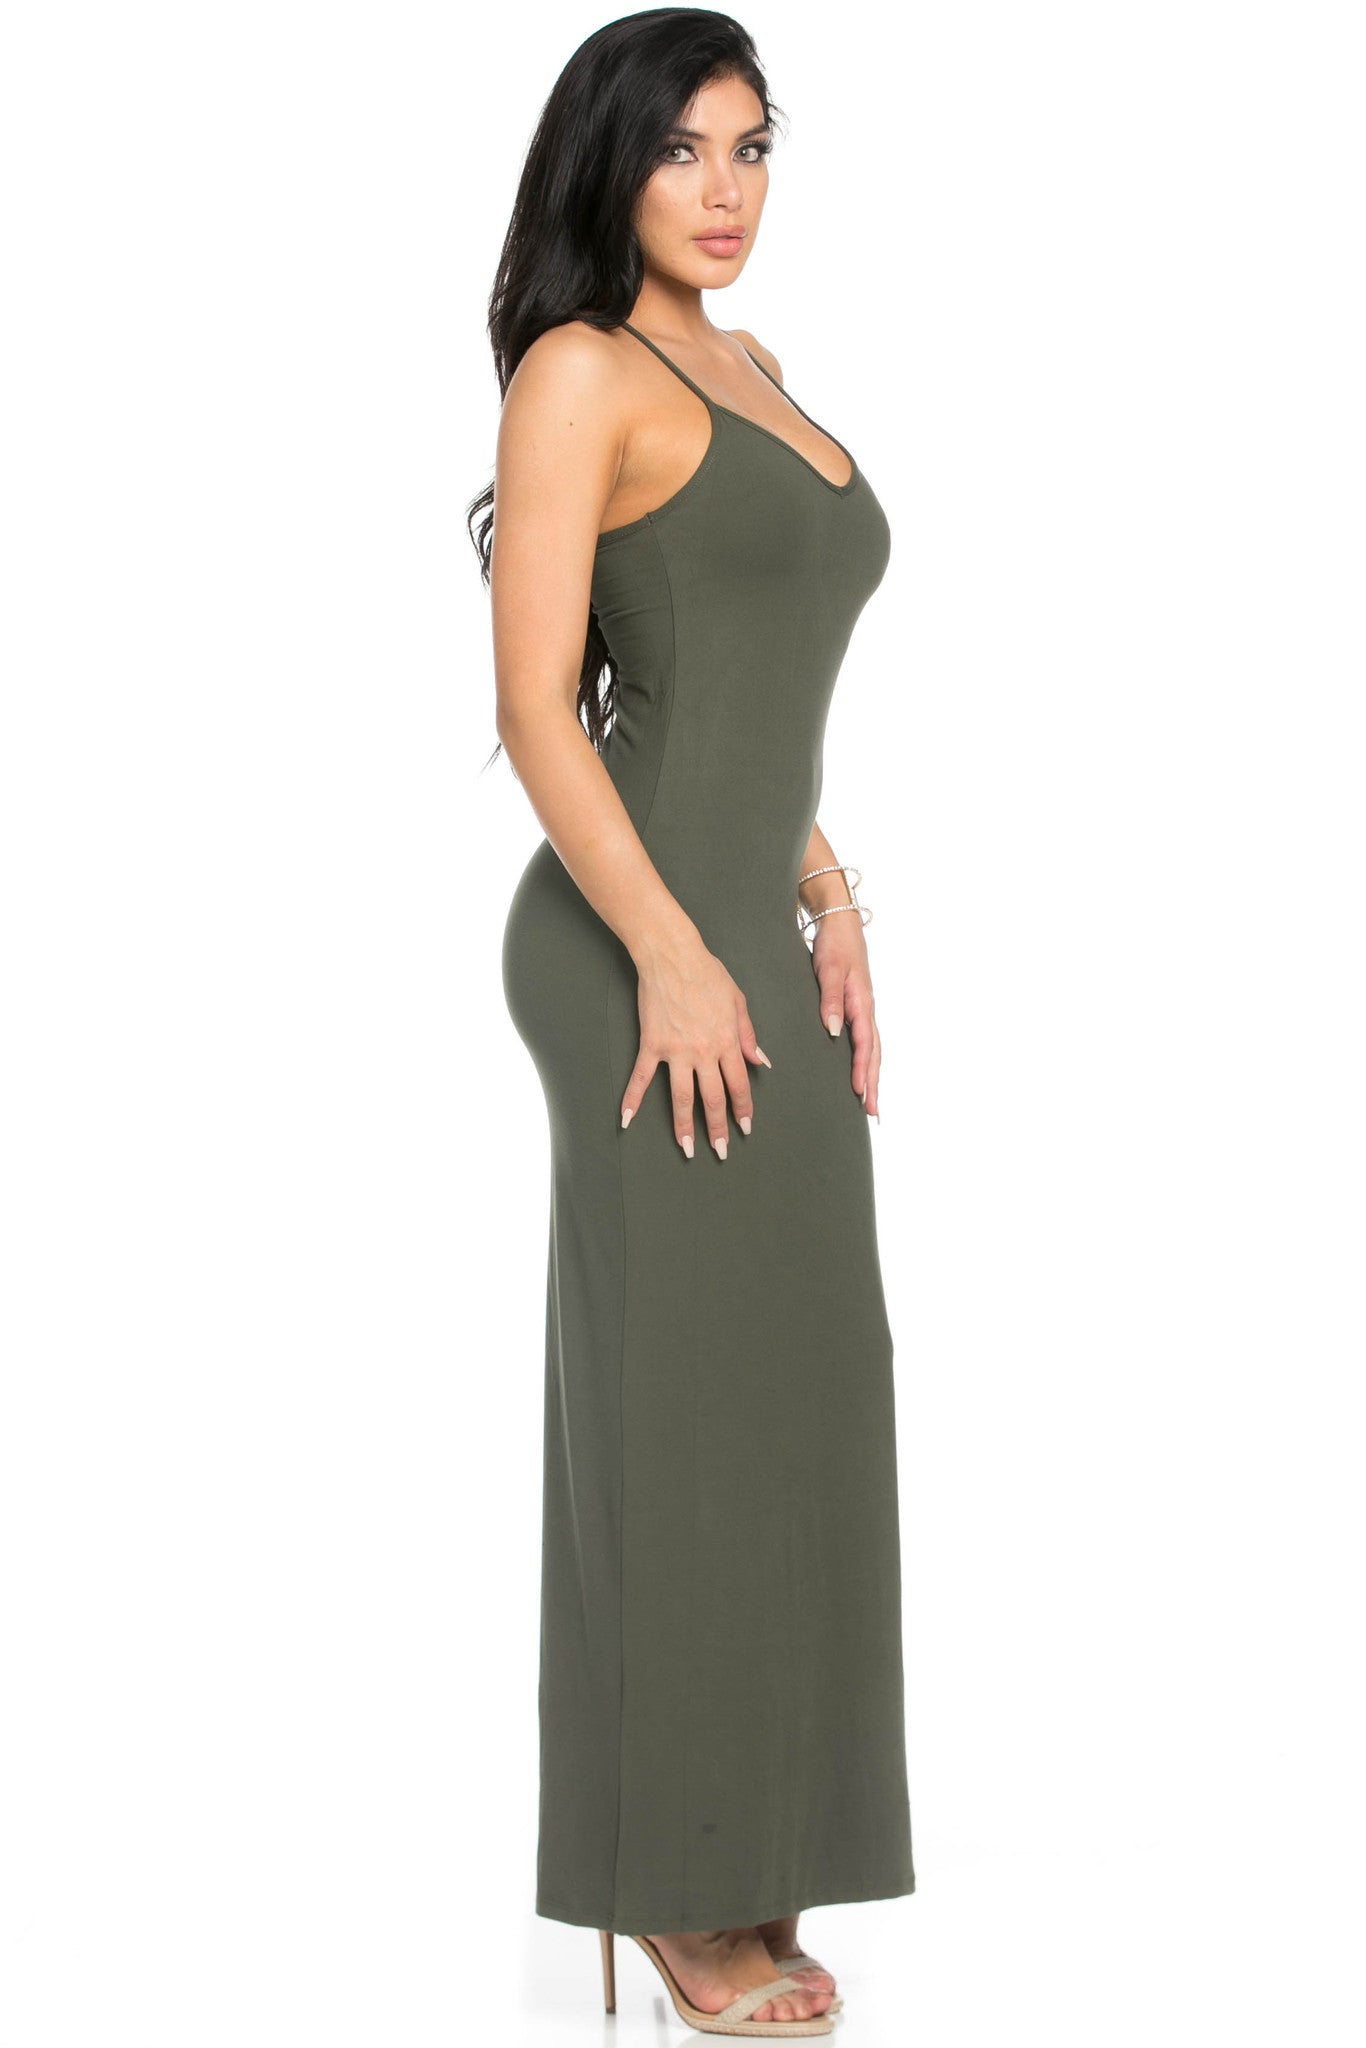 Micro Suede Olive Maxi Dress - Dresses - My Yuccie - 5